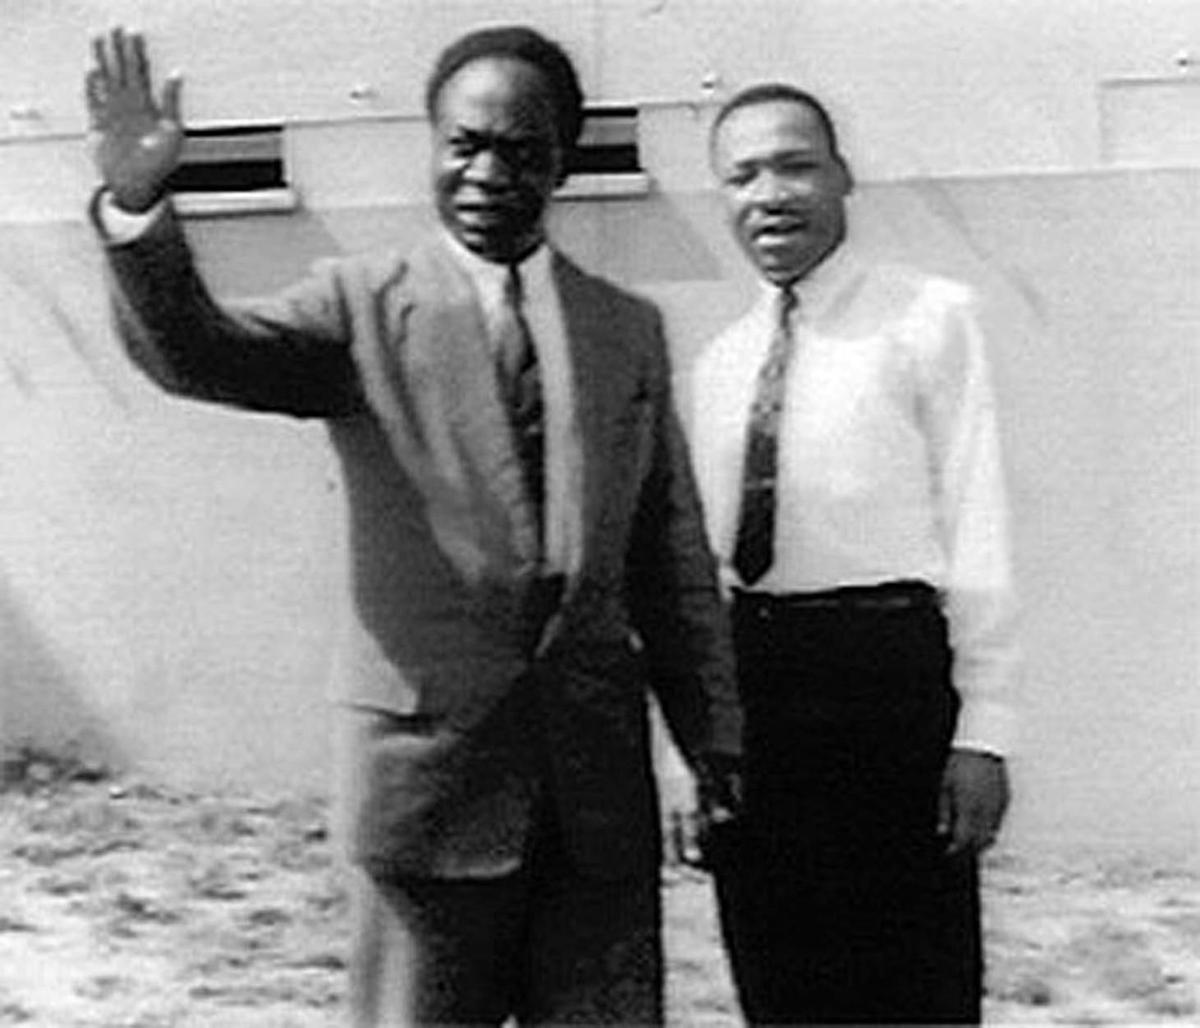 Martin Luther King Jr. and Ghana's first President Kwame Nkrumah in 1957 (photo: Govt of Ghana)